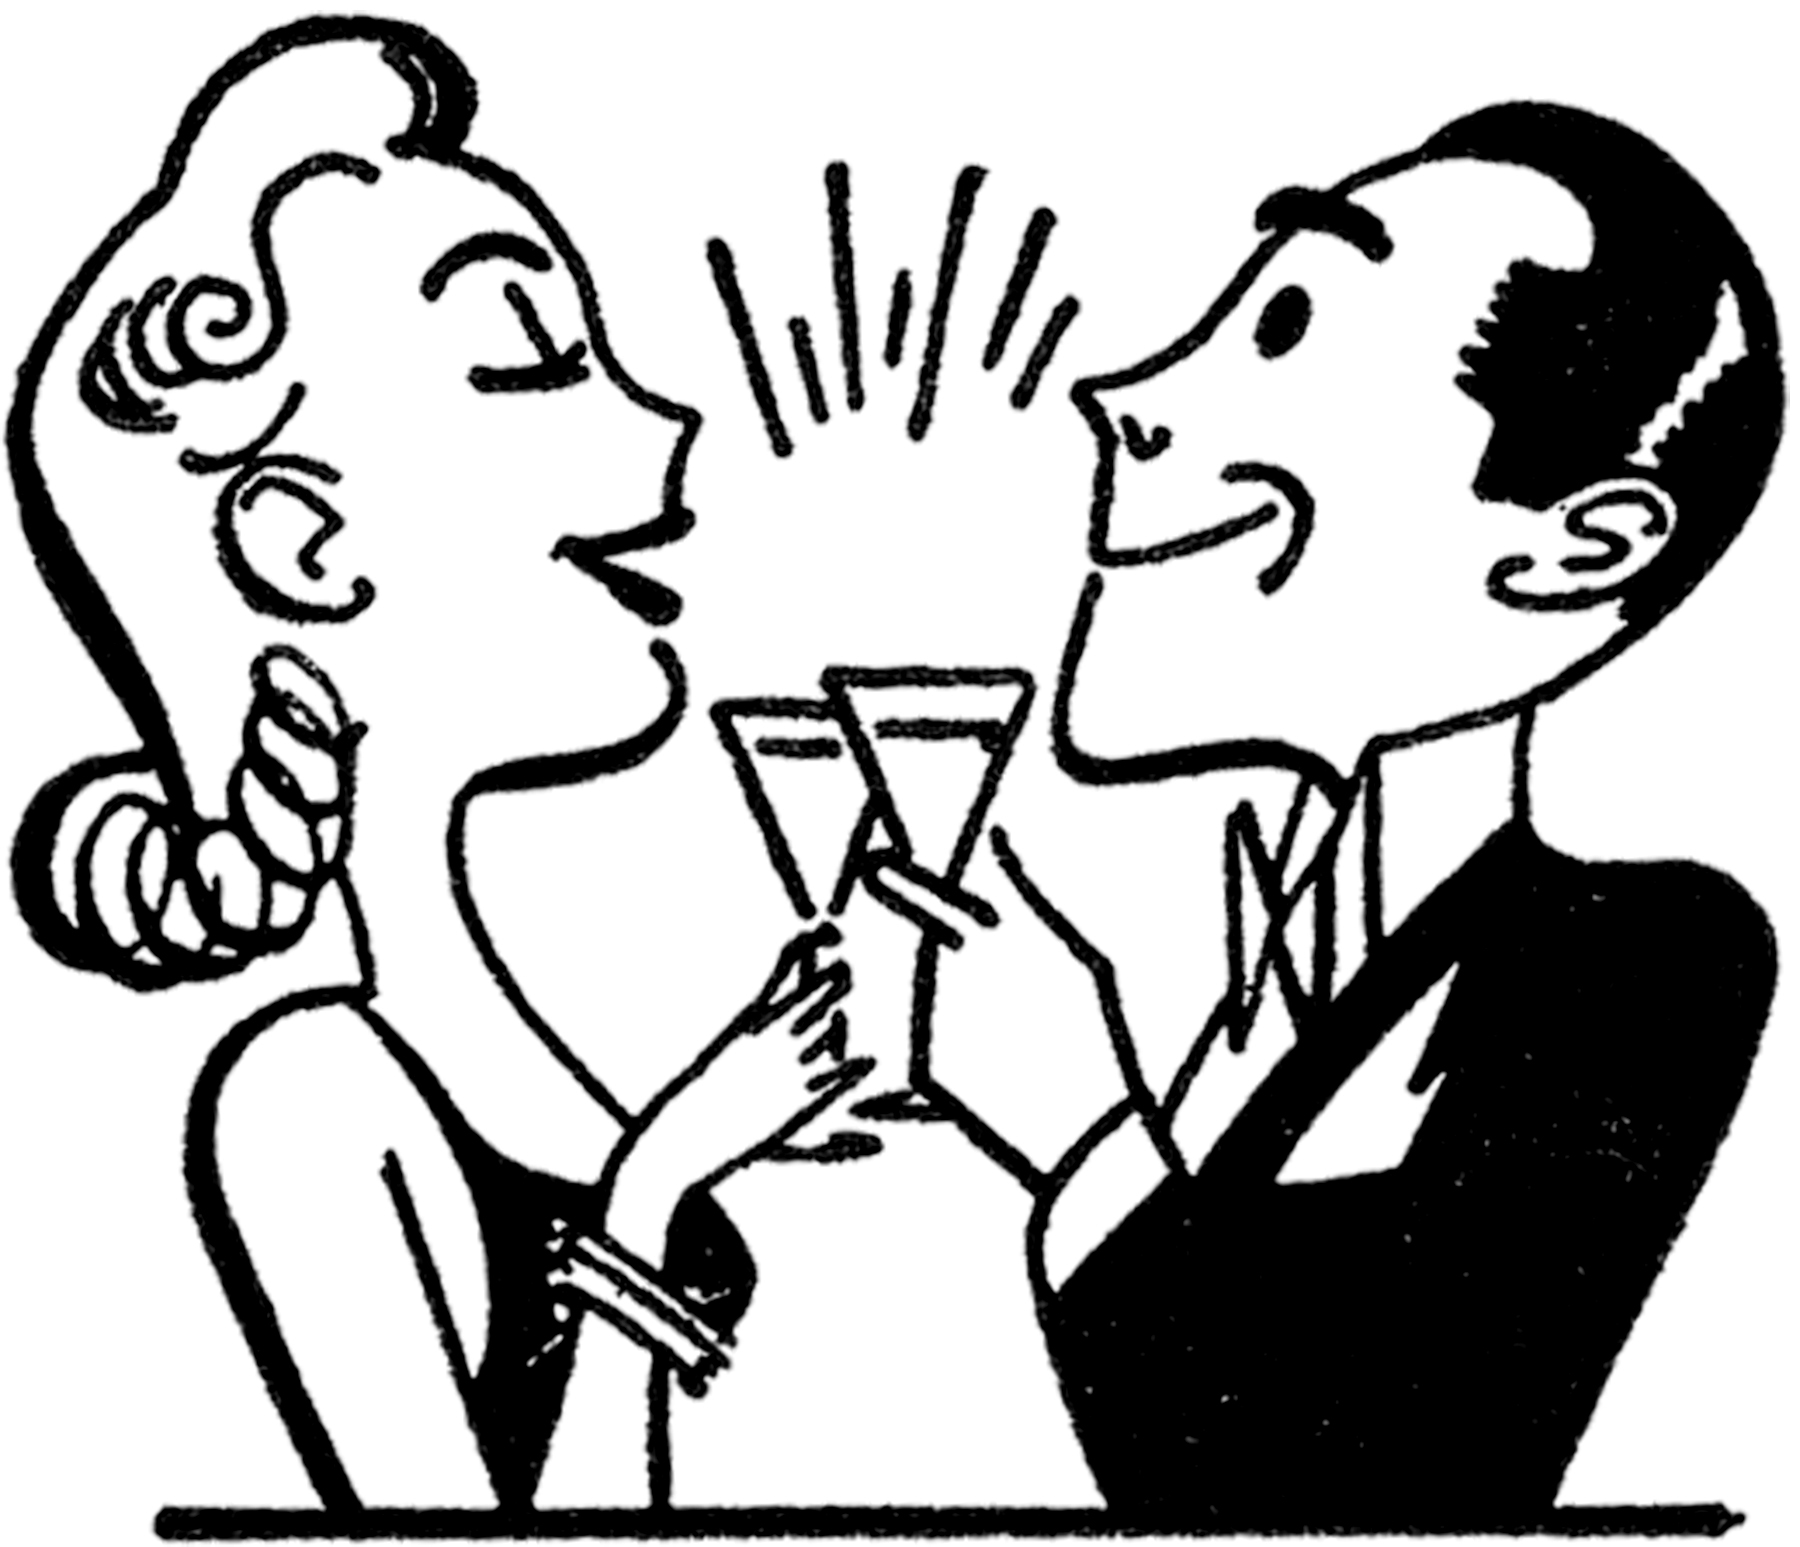 Fun Retro Happy Hour Clip Art!.